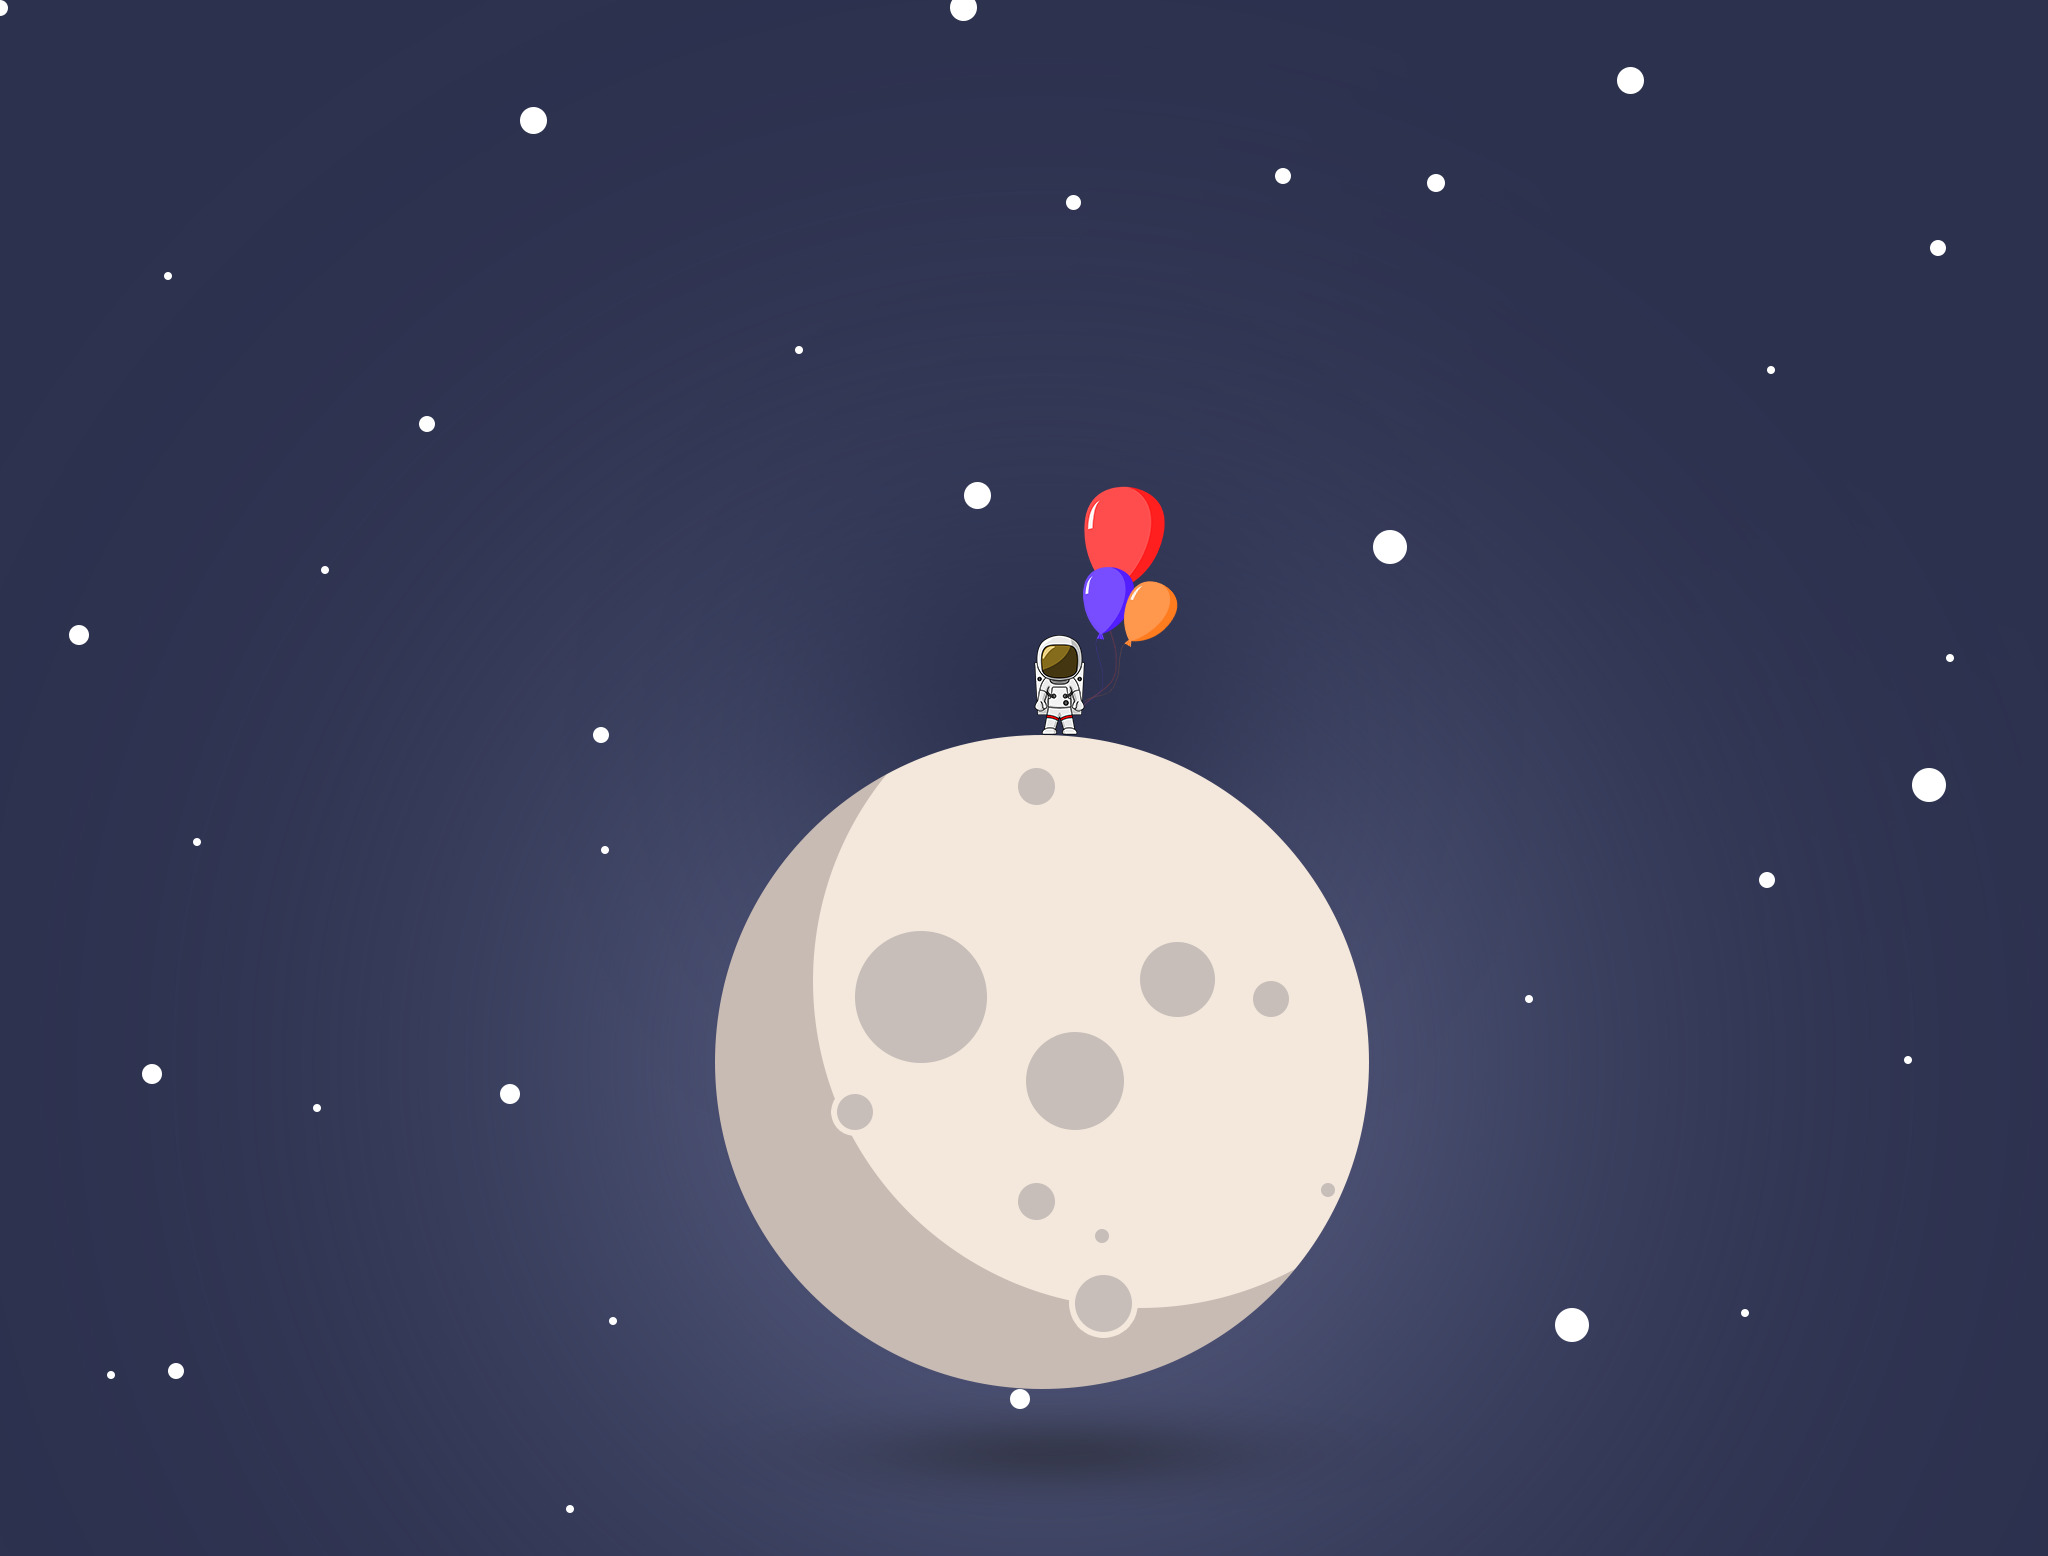 3840x1080 Hd Wallpapers Sad Quote Astronaut Space Illustration Blue Moon White Ball